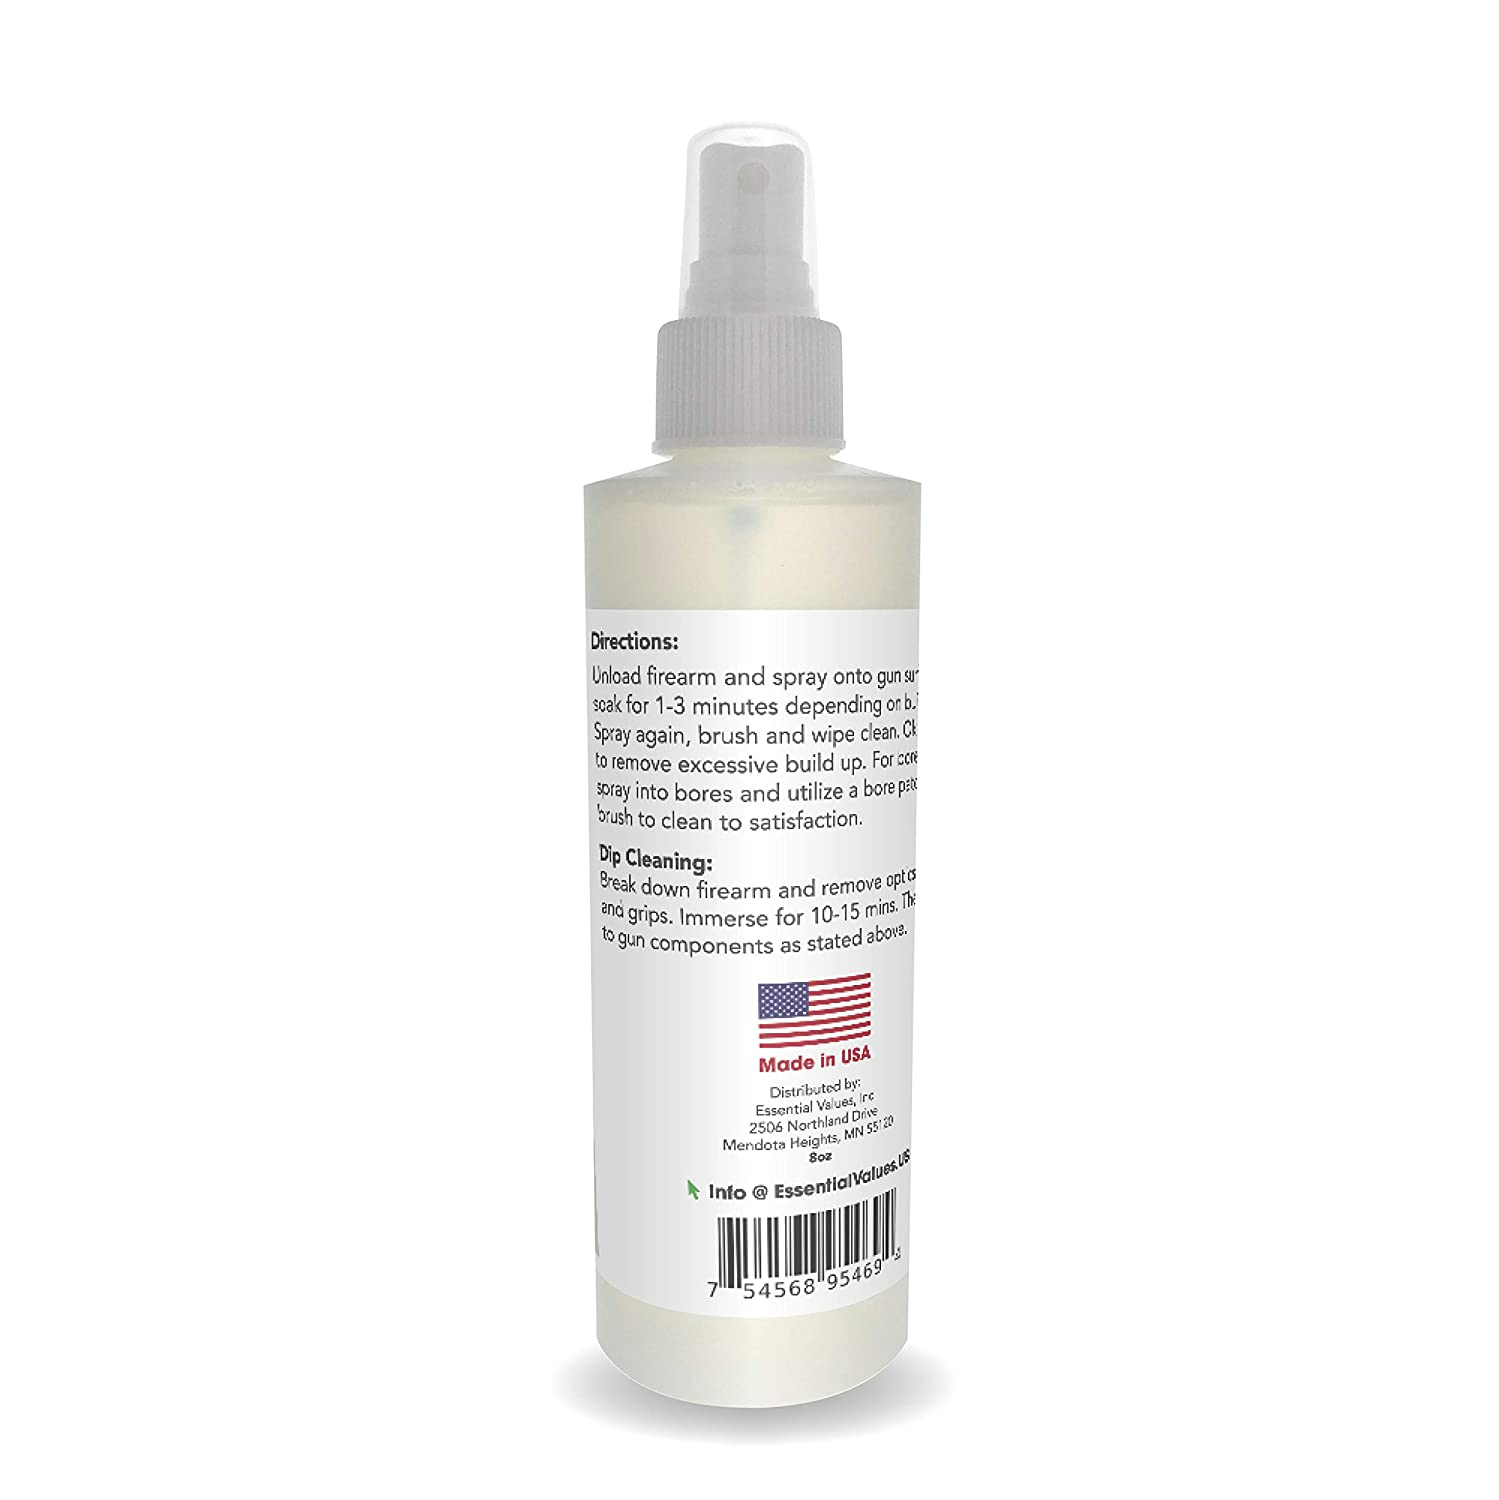 Essential Values Gun Cleaner Spray, (8oz) Best Used for Carbon, Lead &  Copper Removal in Handguns, Rifles & Shotguns (Comparable to Hoppe's Elite  &